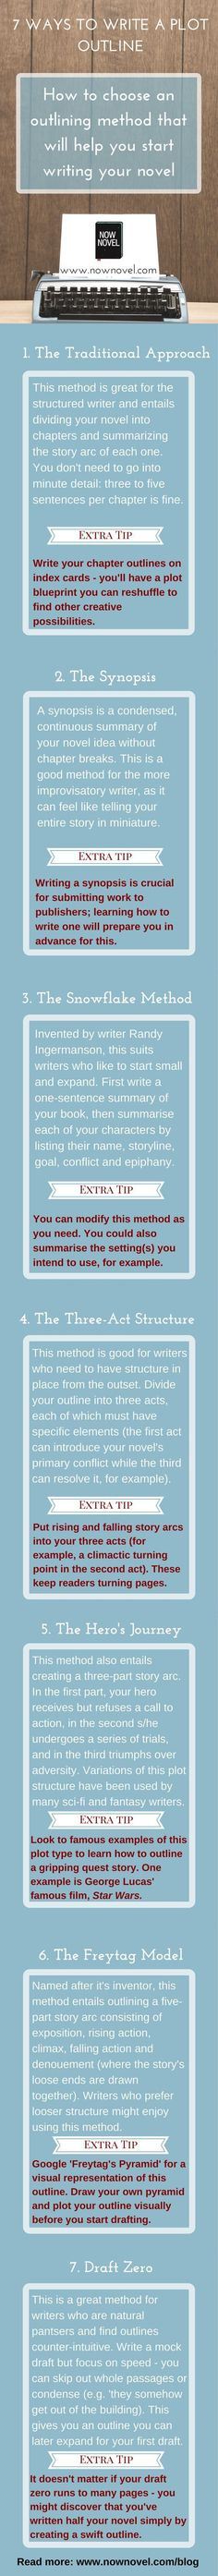 A handy infographic to show you 7 ways you can write your novel outline.